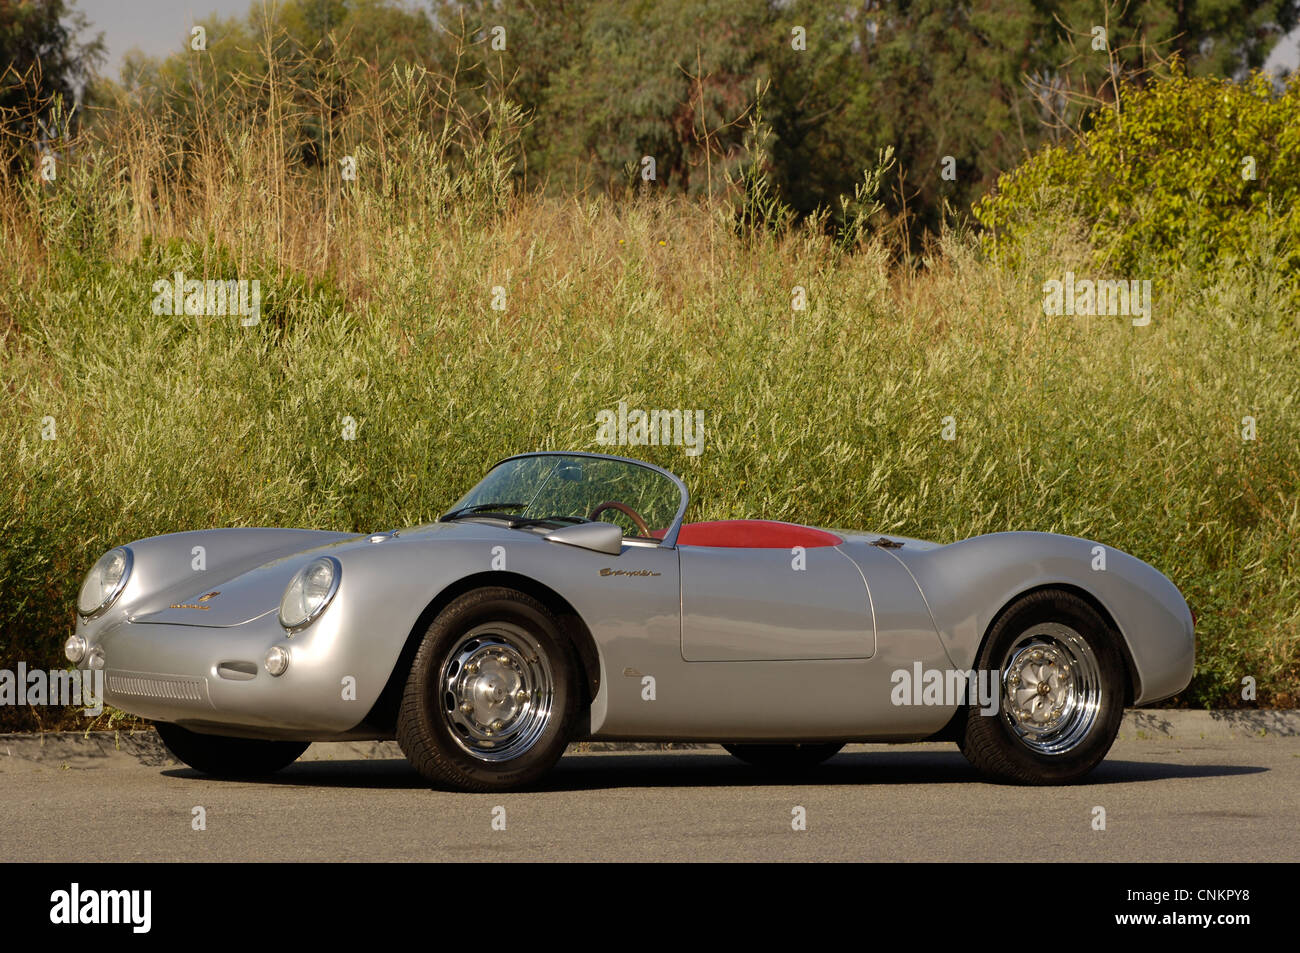 James Dean Porsche High Resolution Stock Photography And Images Alamy